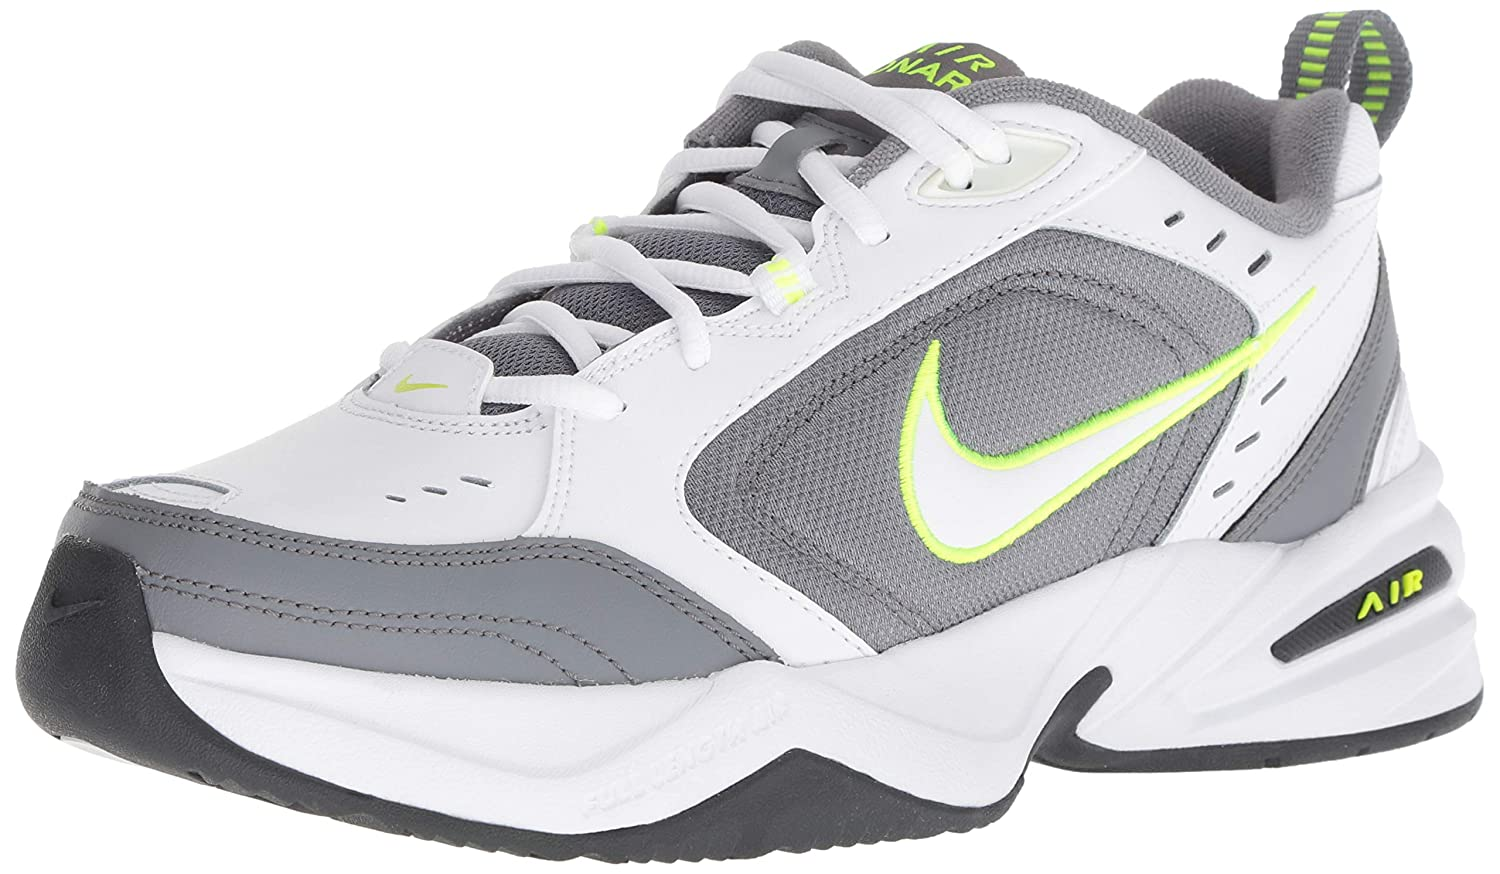 038af62e92f7d Nike Men's Air Monarch IV Athletic Shoe, White/White - Cool Grey -  Anthracite: Nike: Amazon.ca: Shoes & Handbags